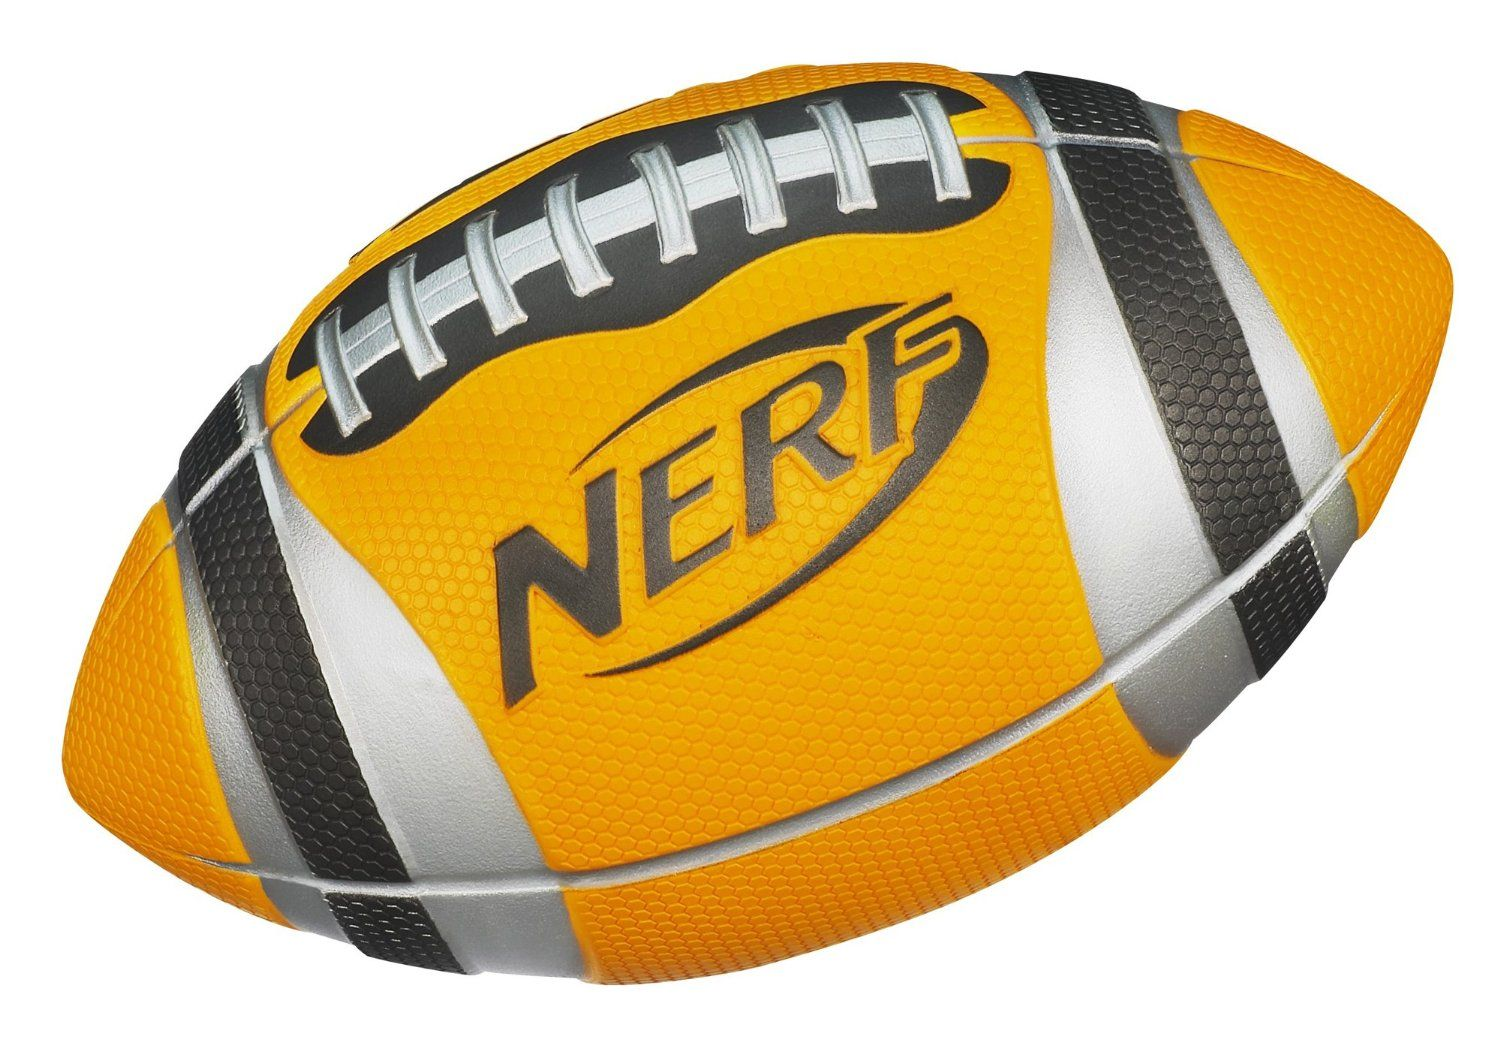 Football Toys For Boys : Nerf n sports pro grip football orange see more at toy